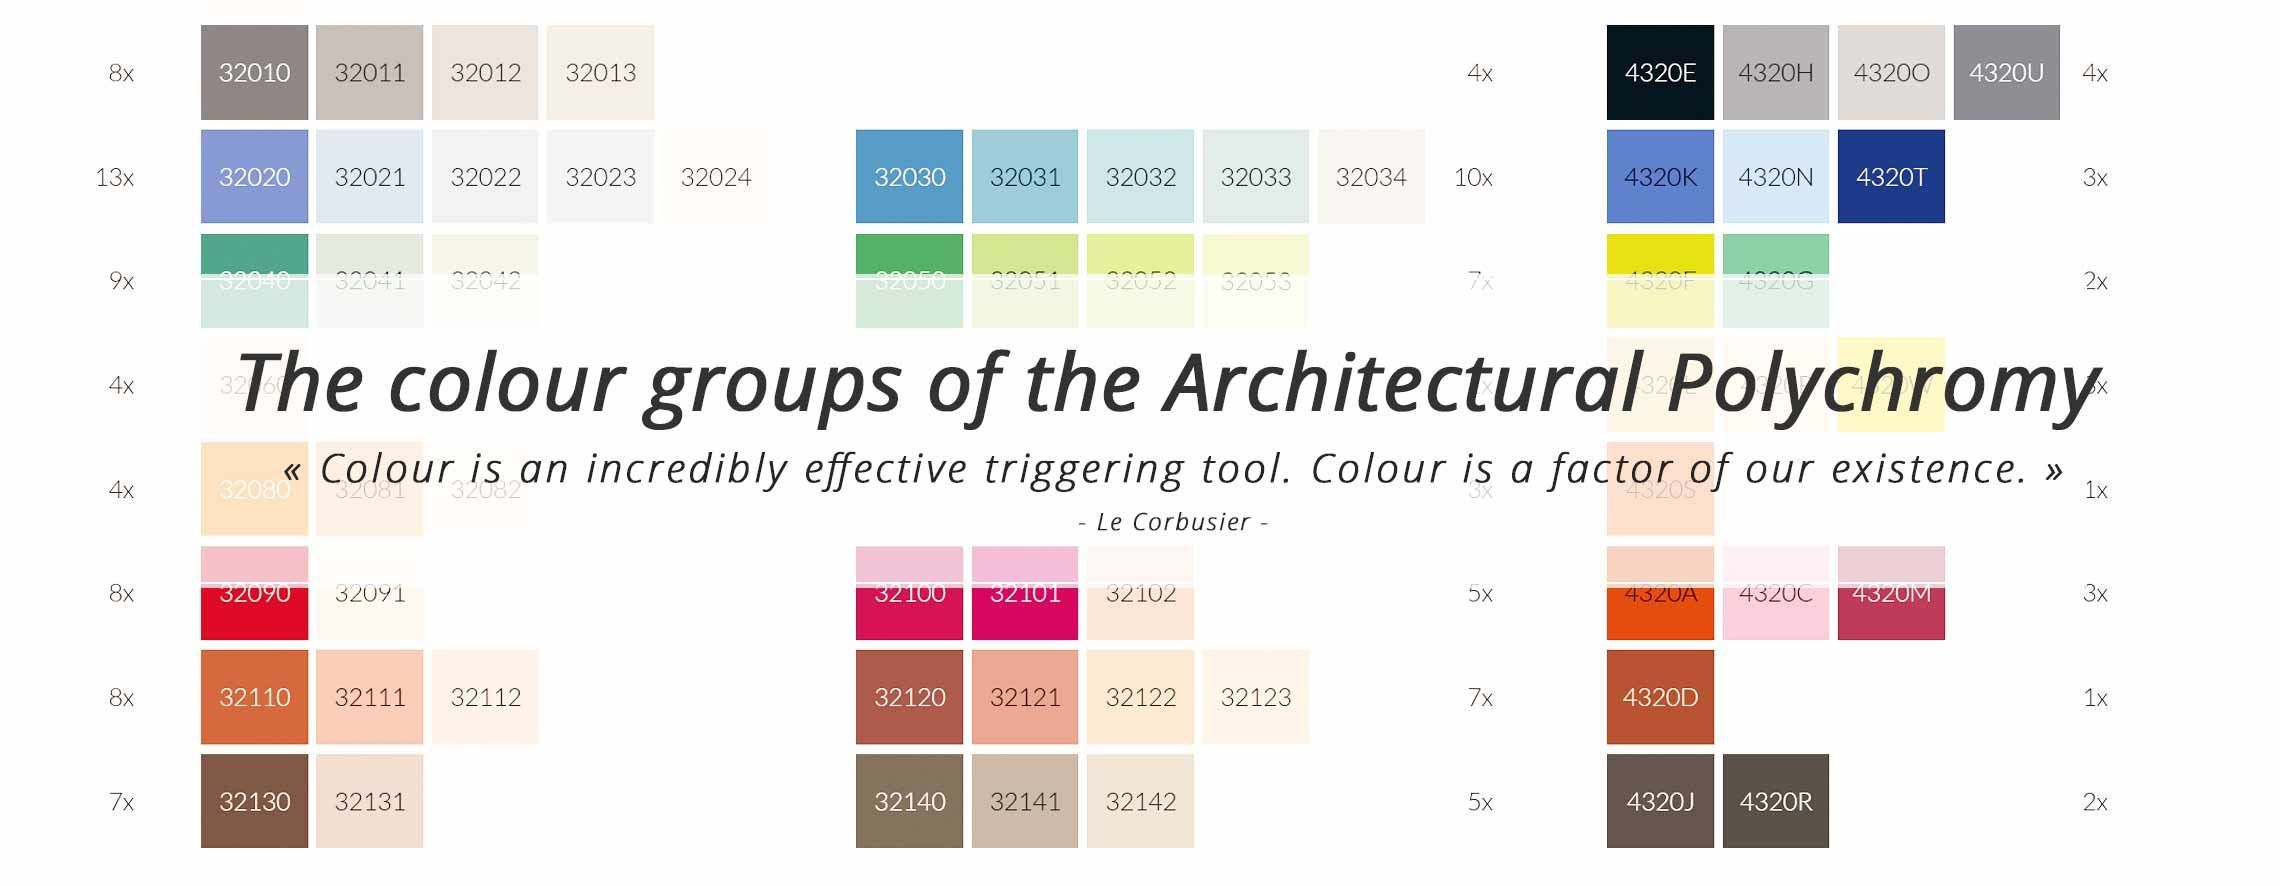 More Information About The Color Groups Of The Architectural